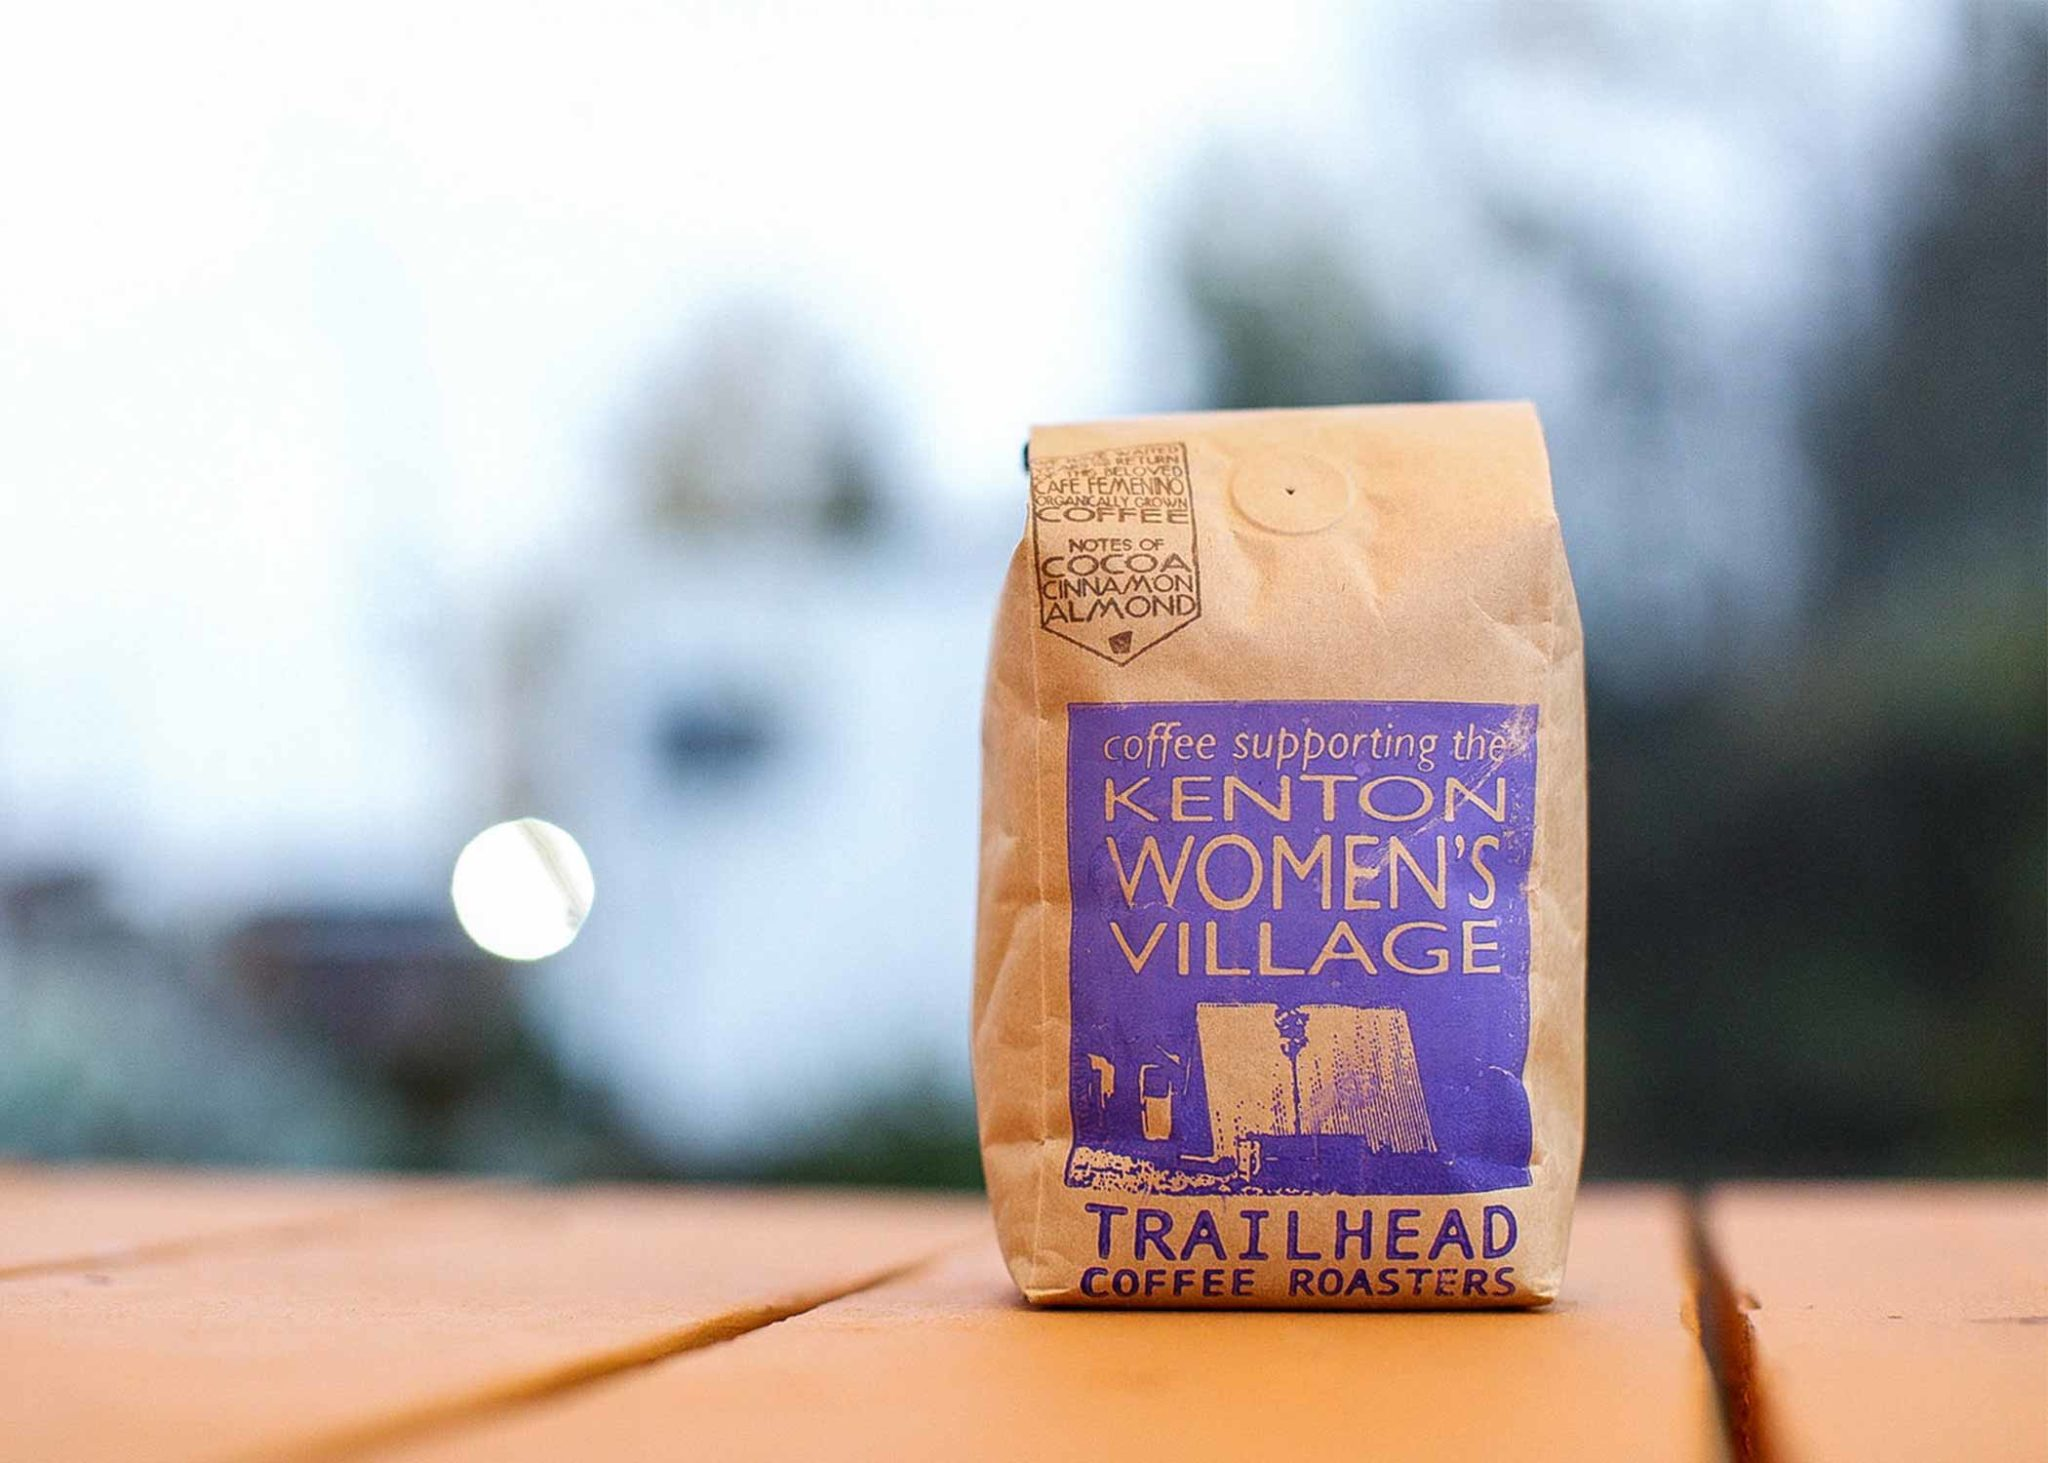 A bag of coffee promoting Kenton Women's Village on the label